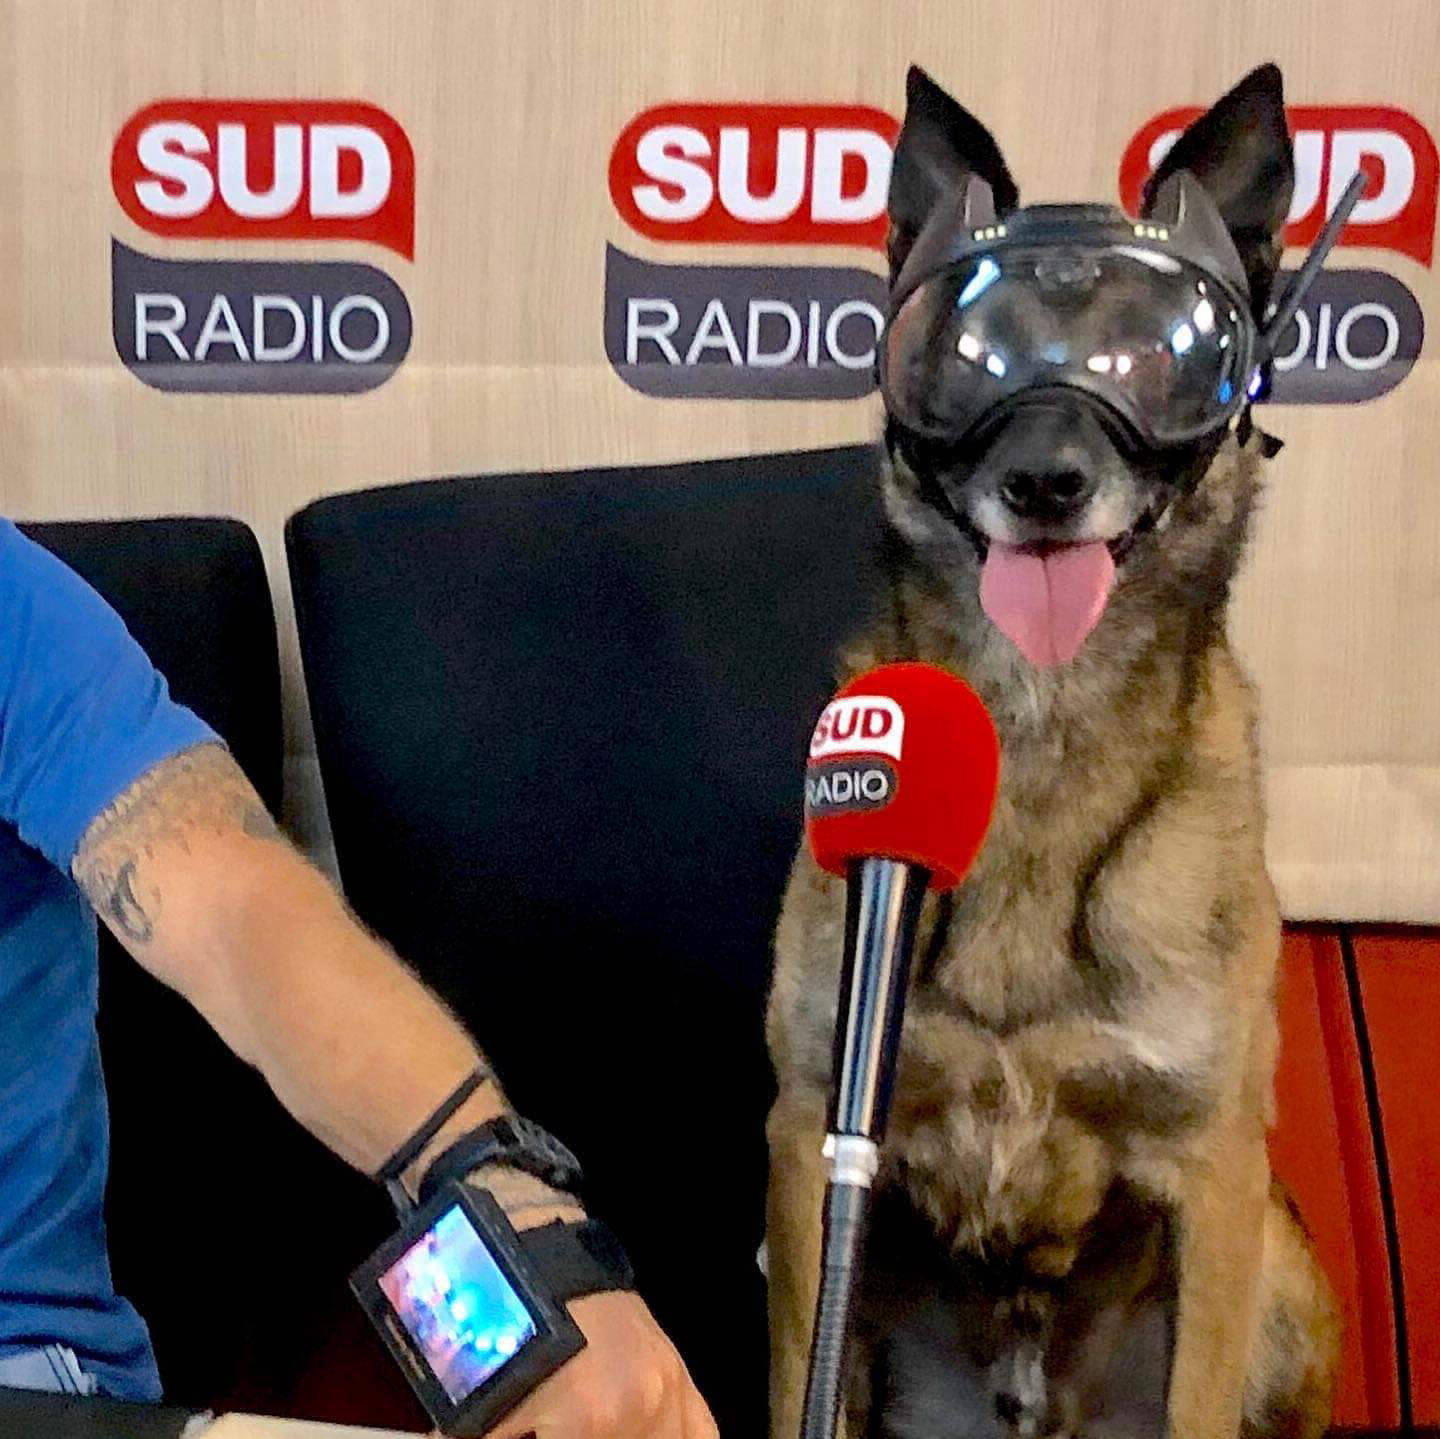 sud radio chien k9 vision system pour brigade cyno et militaire